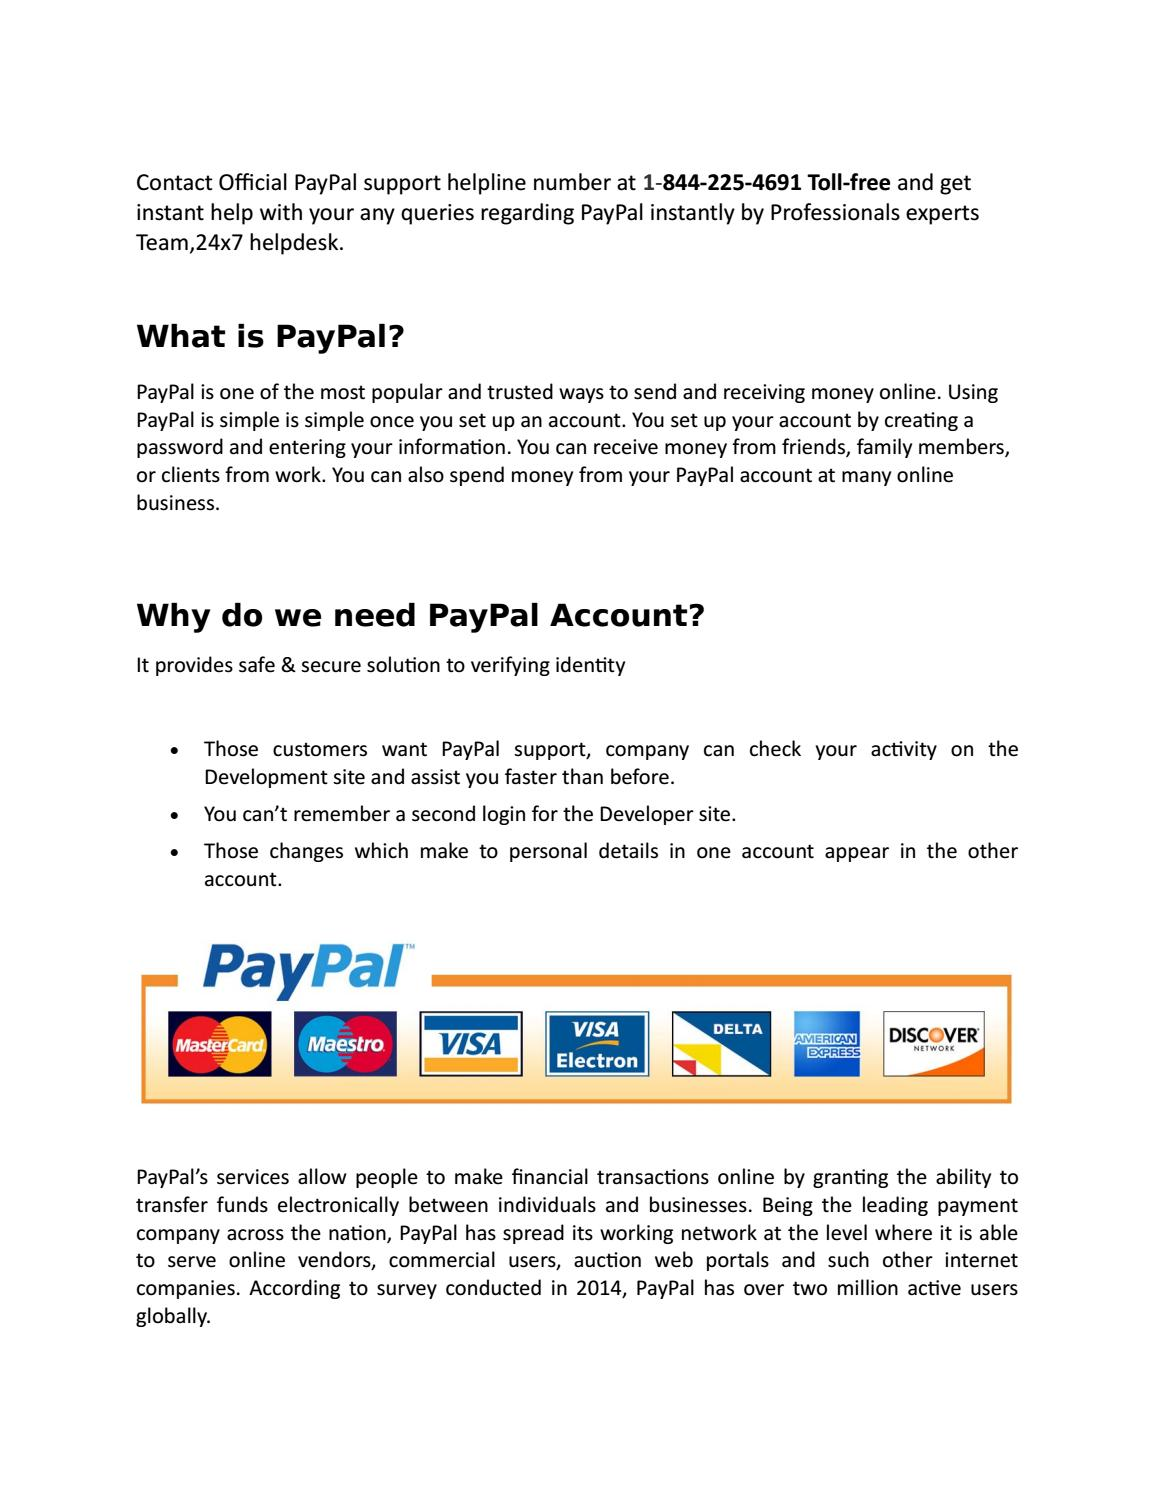 what is the paypal support number? 1-844-225-4691 toll-free by